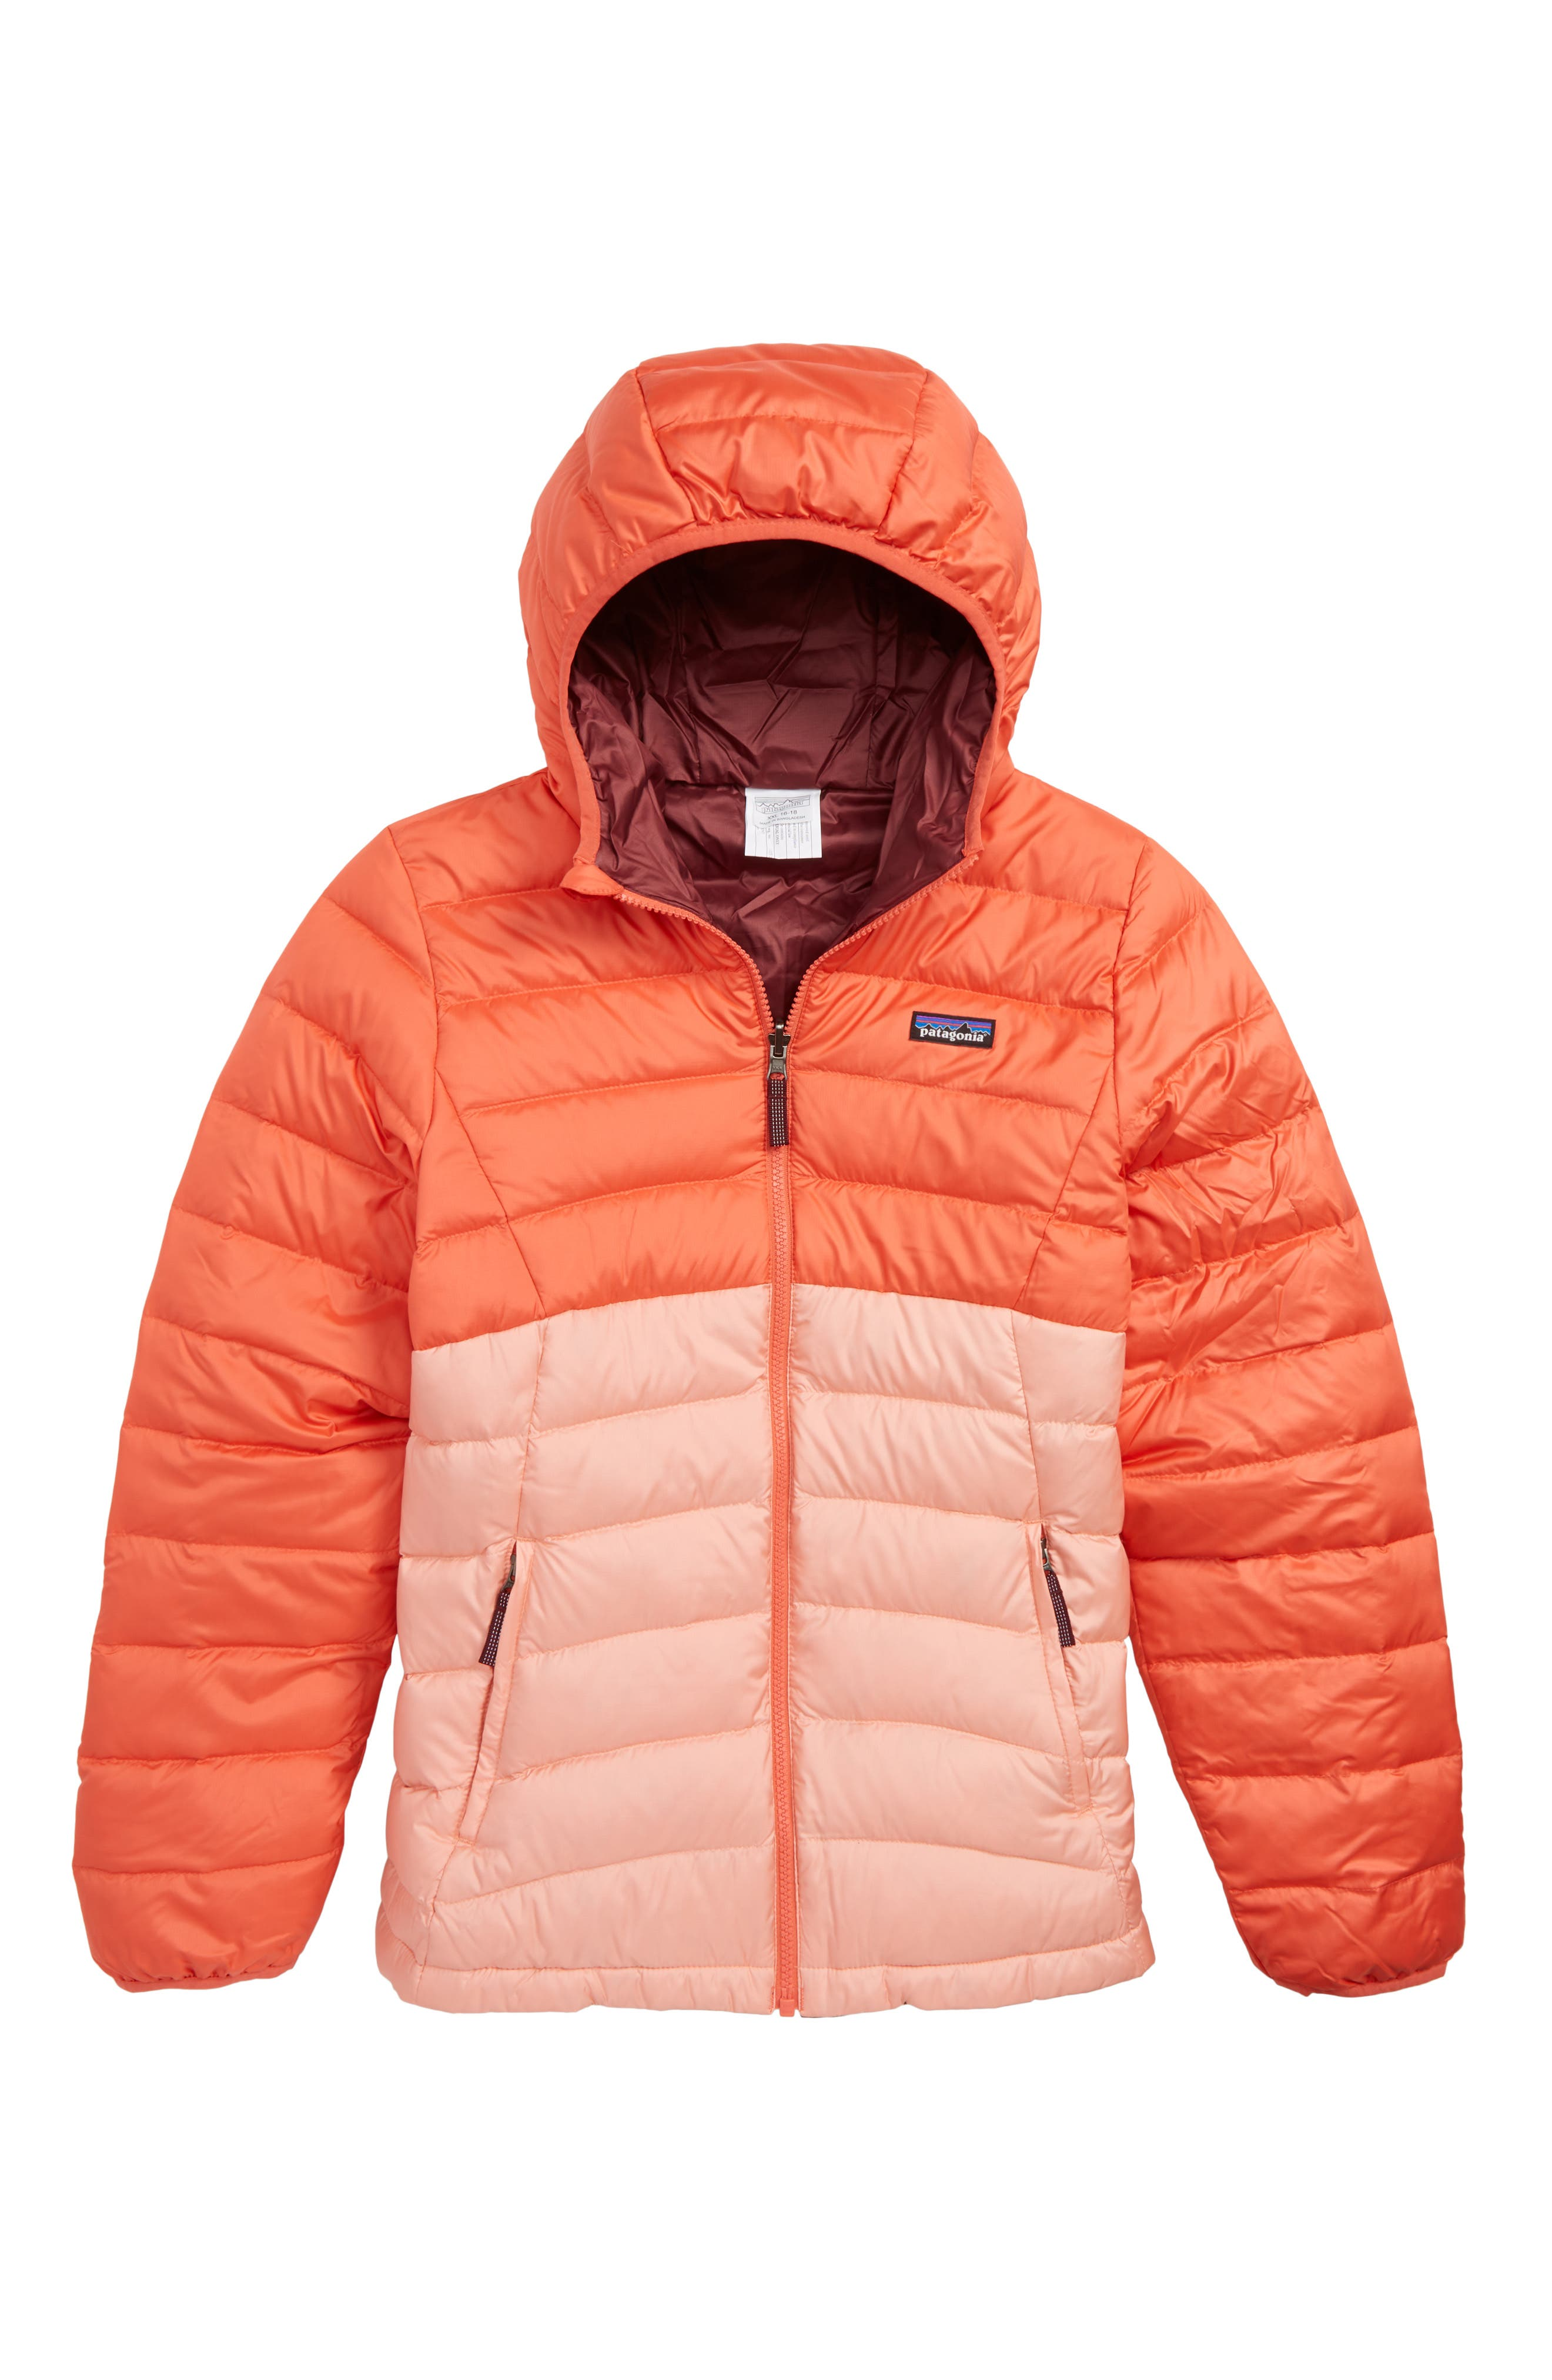 Reversible Water Repellent 600 Fill Power Down Hooded Jacket, Main, color, 950